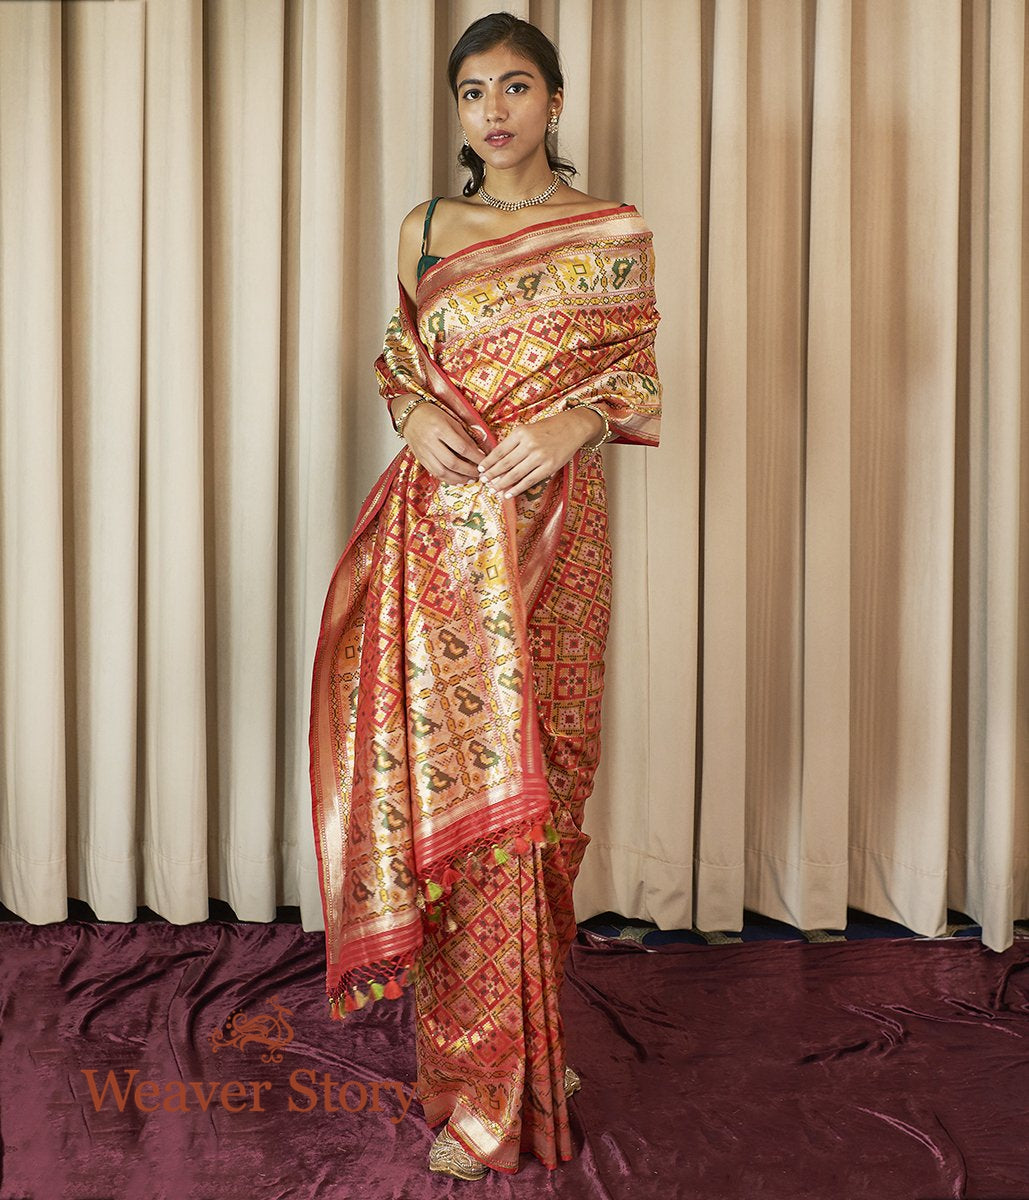 Handwoven Red and Yellow Meenakari Patola Saree with Parrots on the Border